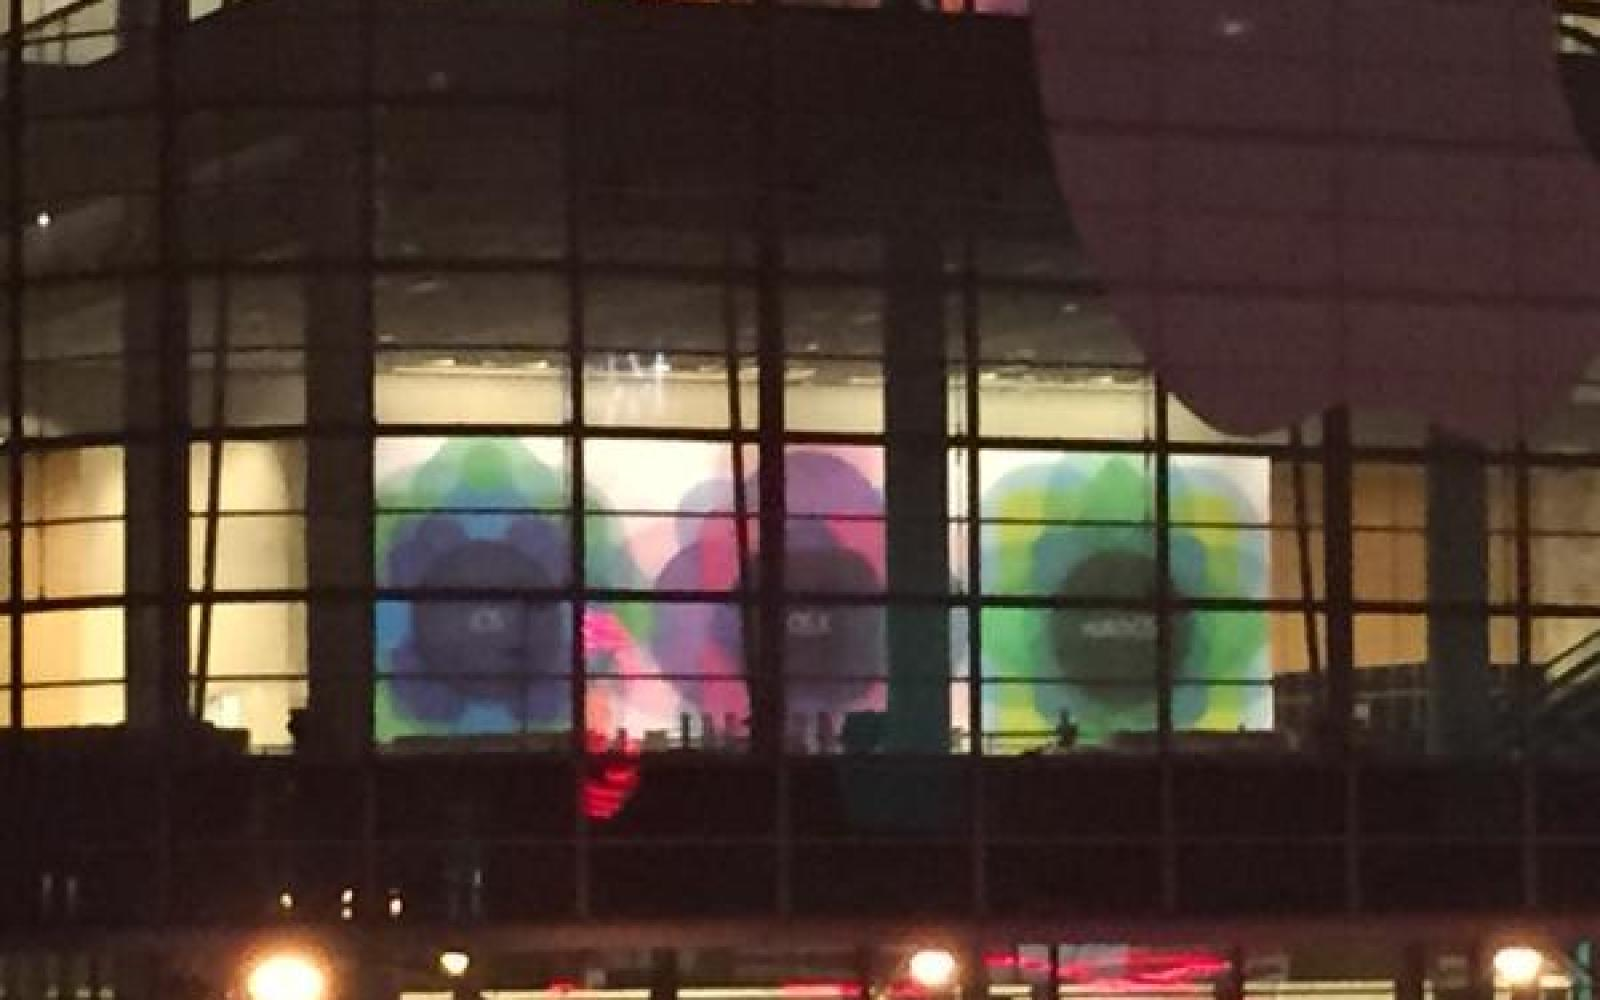 Simple geometric banners depicting iOS, OS X and 'watchOS' spotted at WWDC